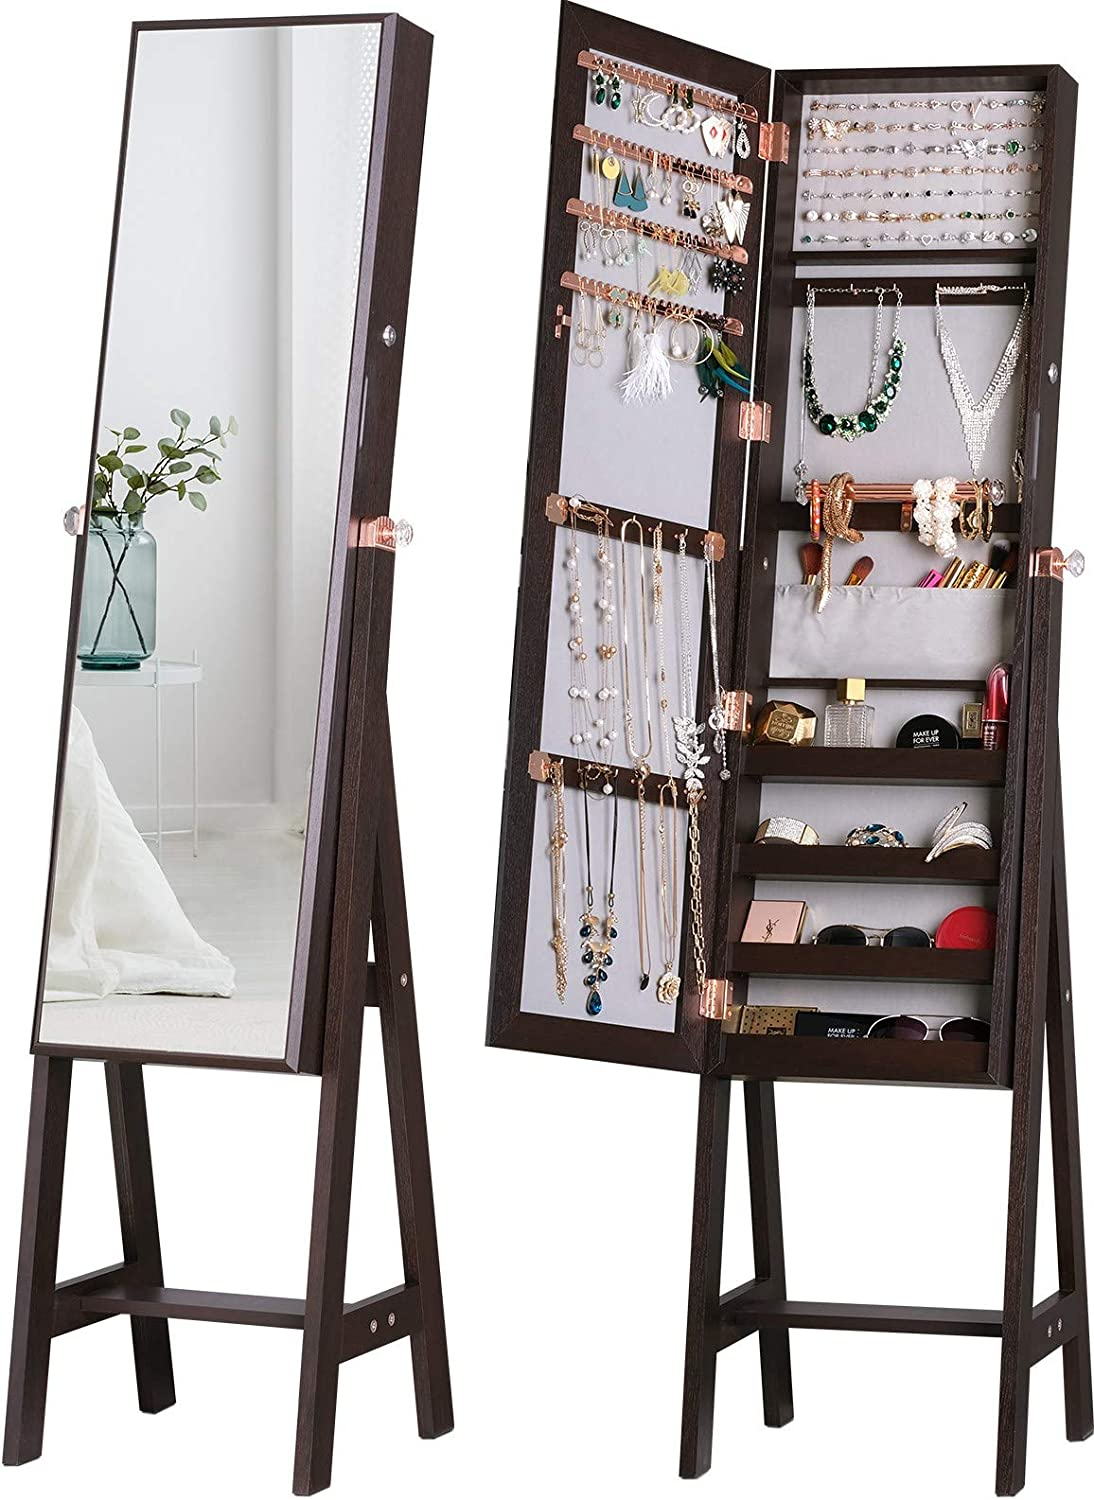 LUXFURNI Jewelry Armoire Standing Full-Length Mirror Makeup Lockable Cabinet , Large Cosmetic Storage Organizer Wall/ Door-Hanging (Brown) : Clothing, Shoes & Jewelry